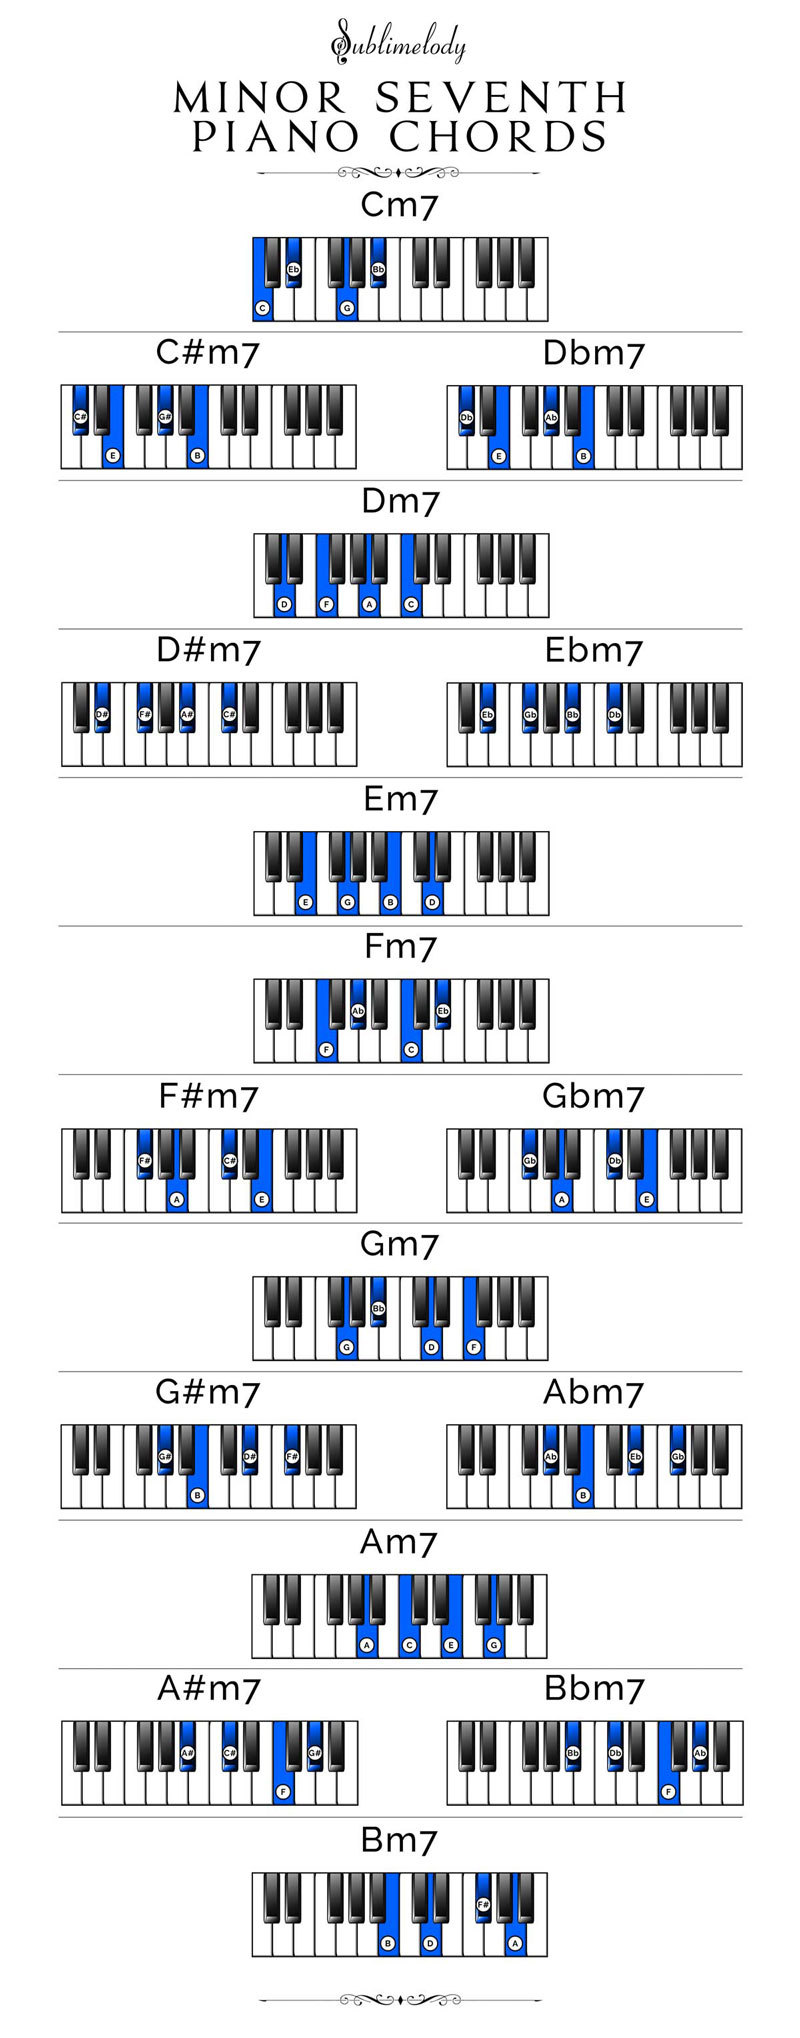 photograph regarding Piano Chords Chart Printable titled Piano Chords: The Definitive Specialist (2018) - Sublimelody